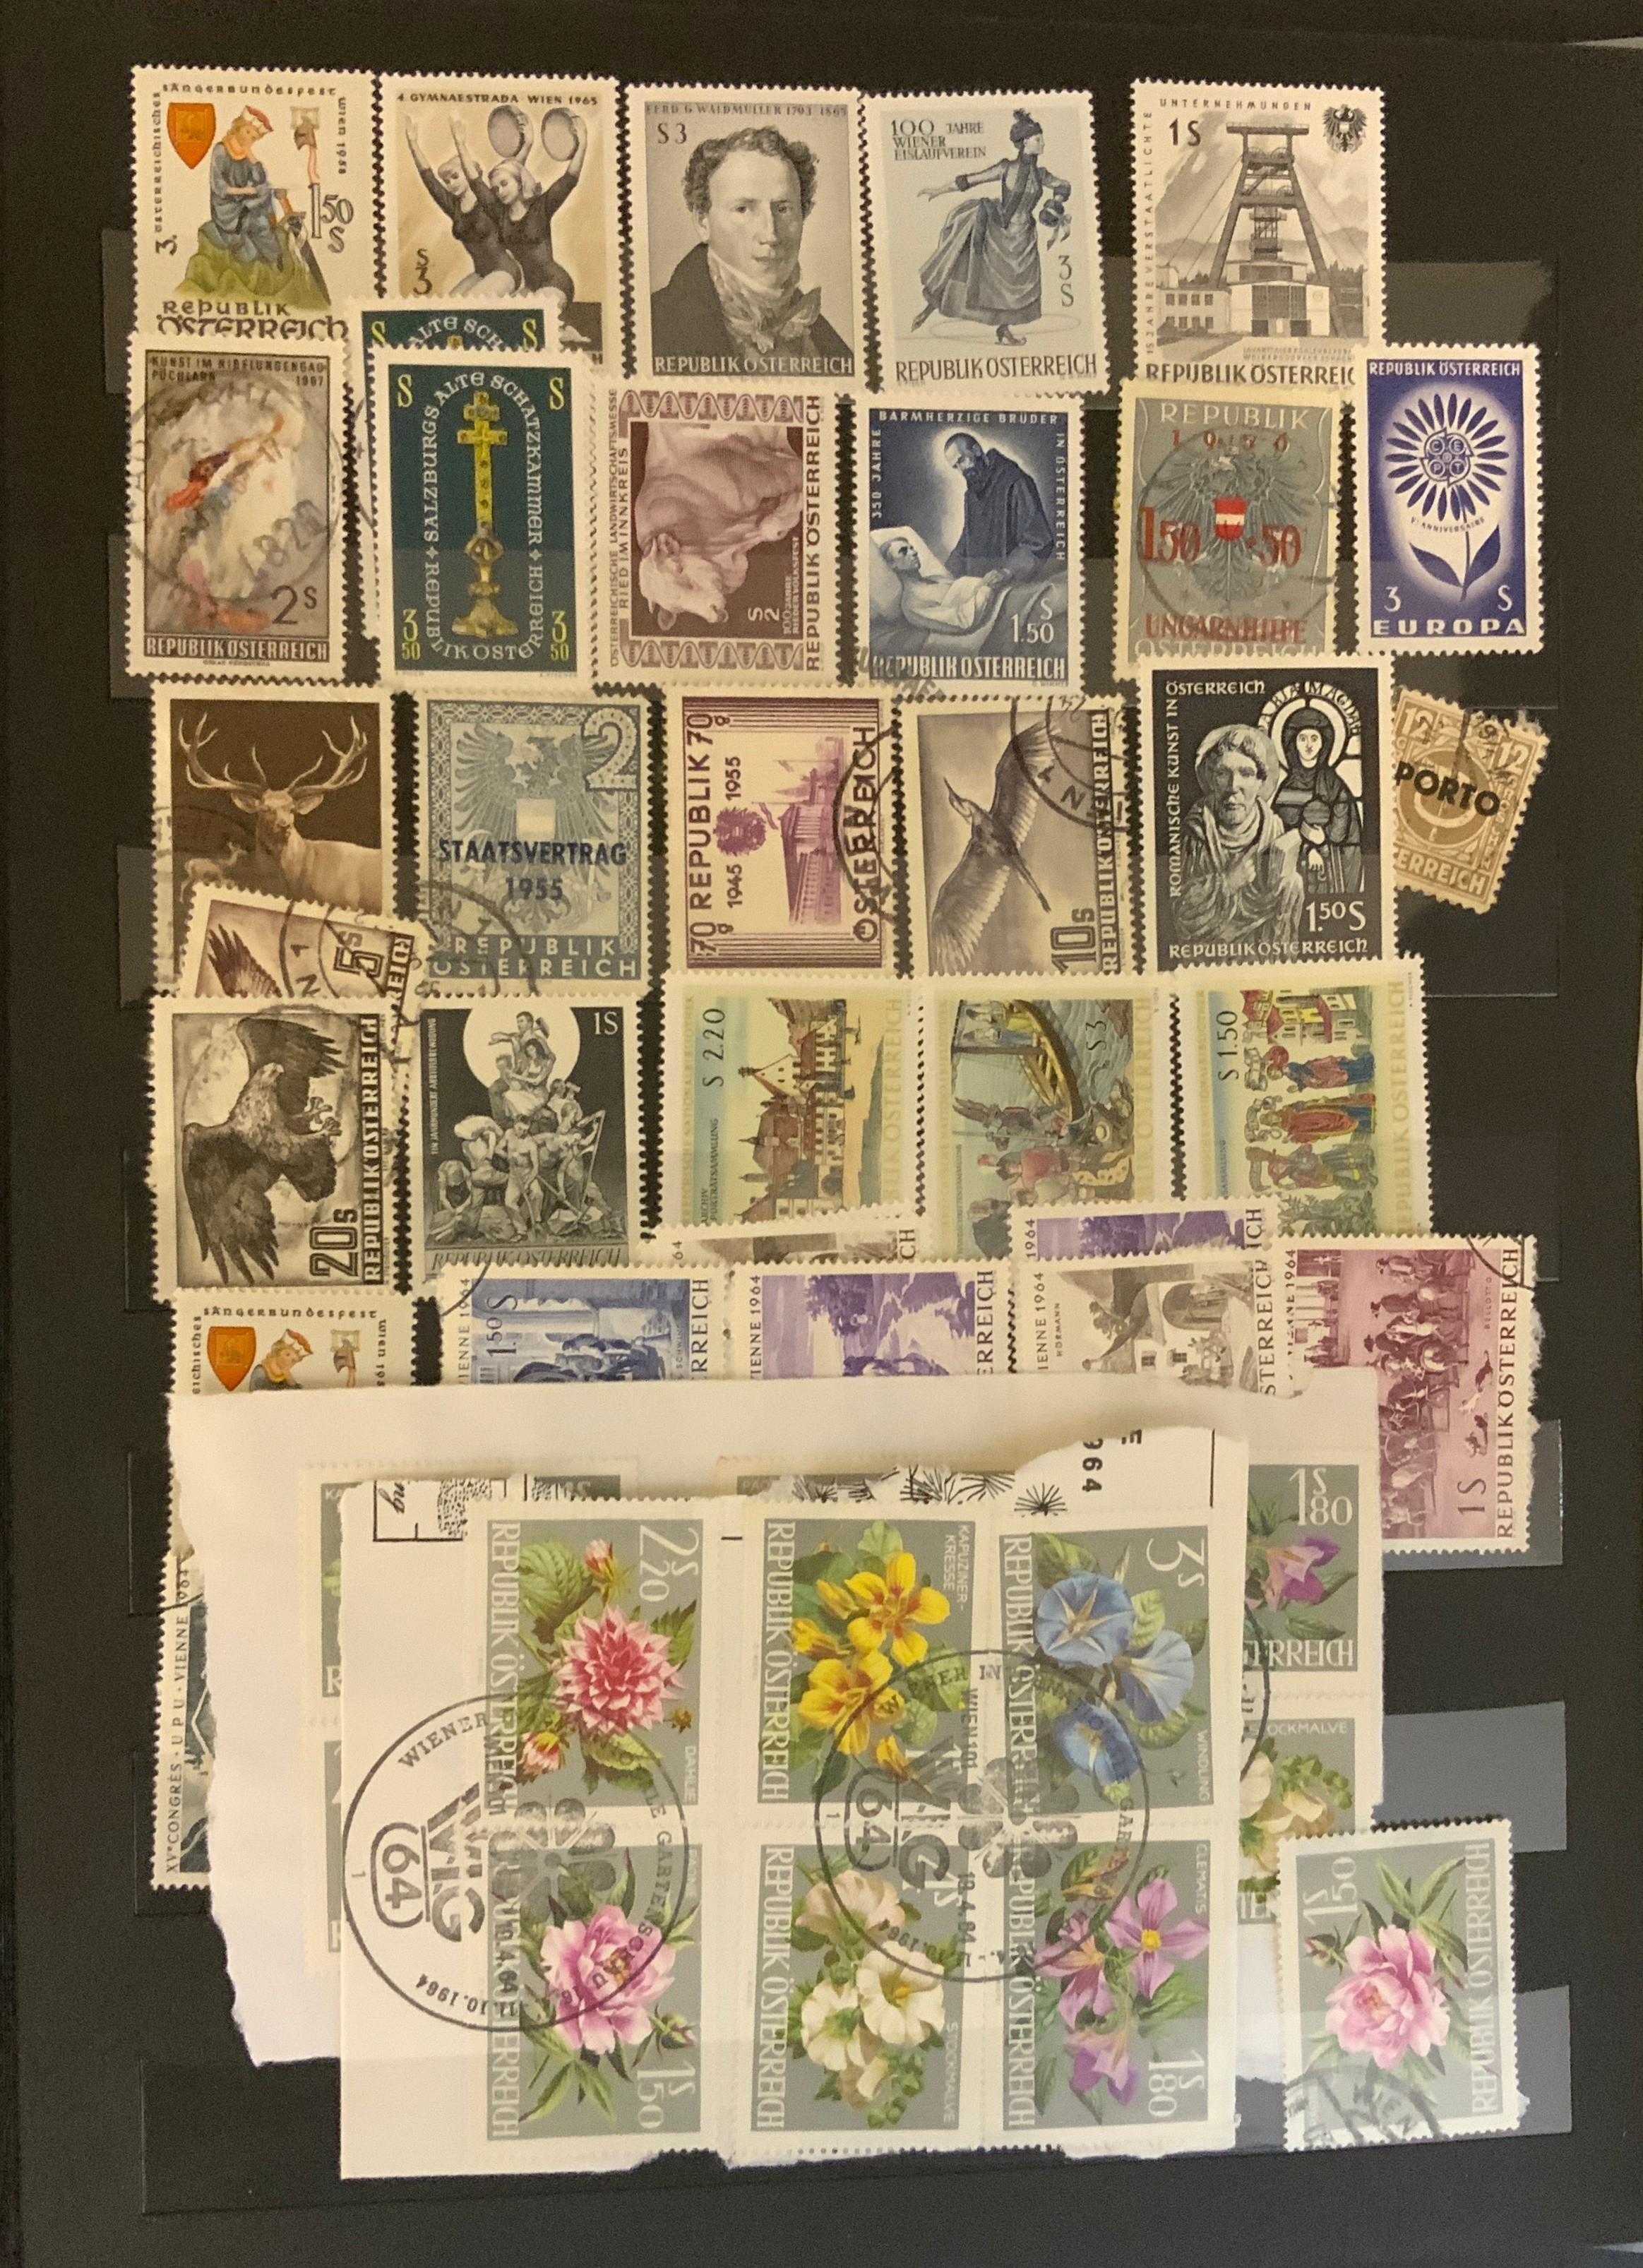 STOCKBOOK WITH STAMPS FROM VARIOUS COUNTRIES INCLUDING AUSTRIA, BELGIUM, FRANCE - Image 14 of 16